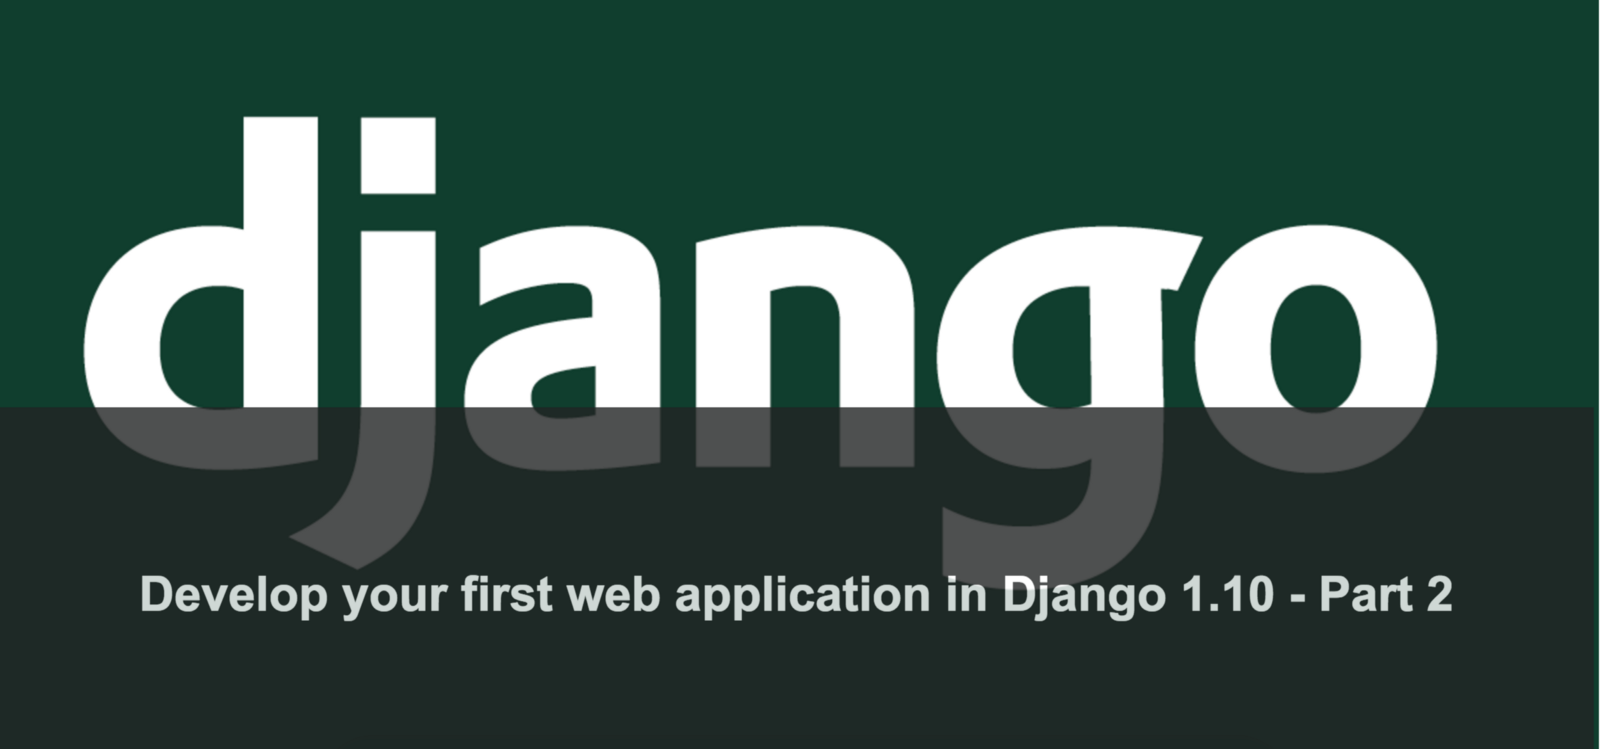 Develop your first web application in Django 1.10 — Part 2